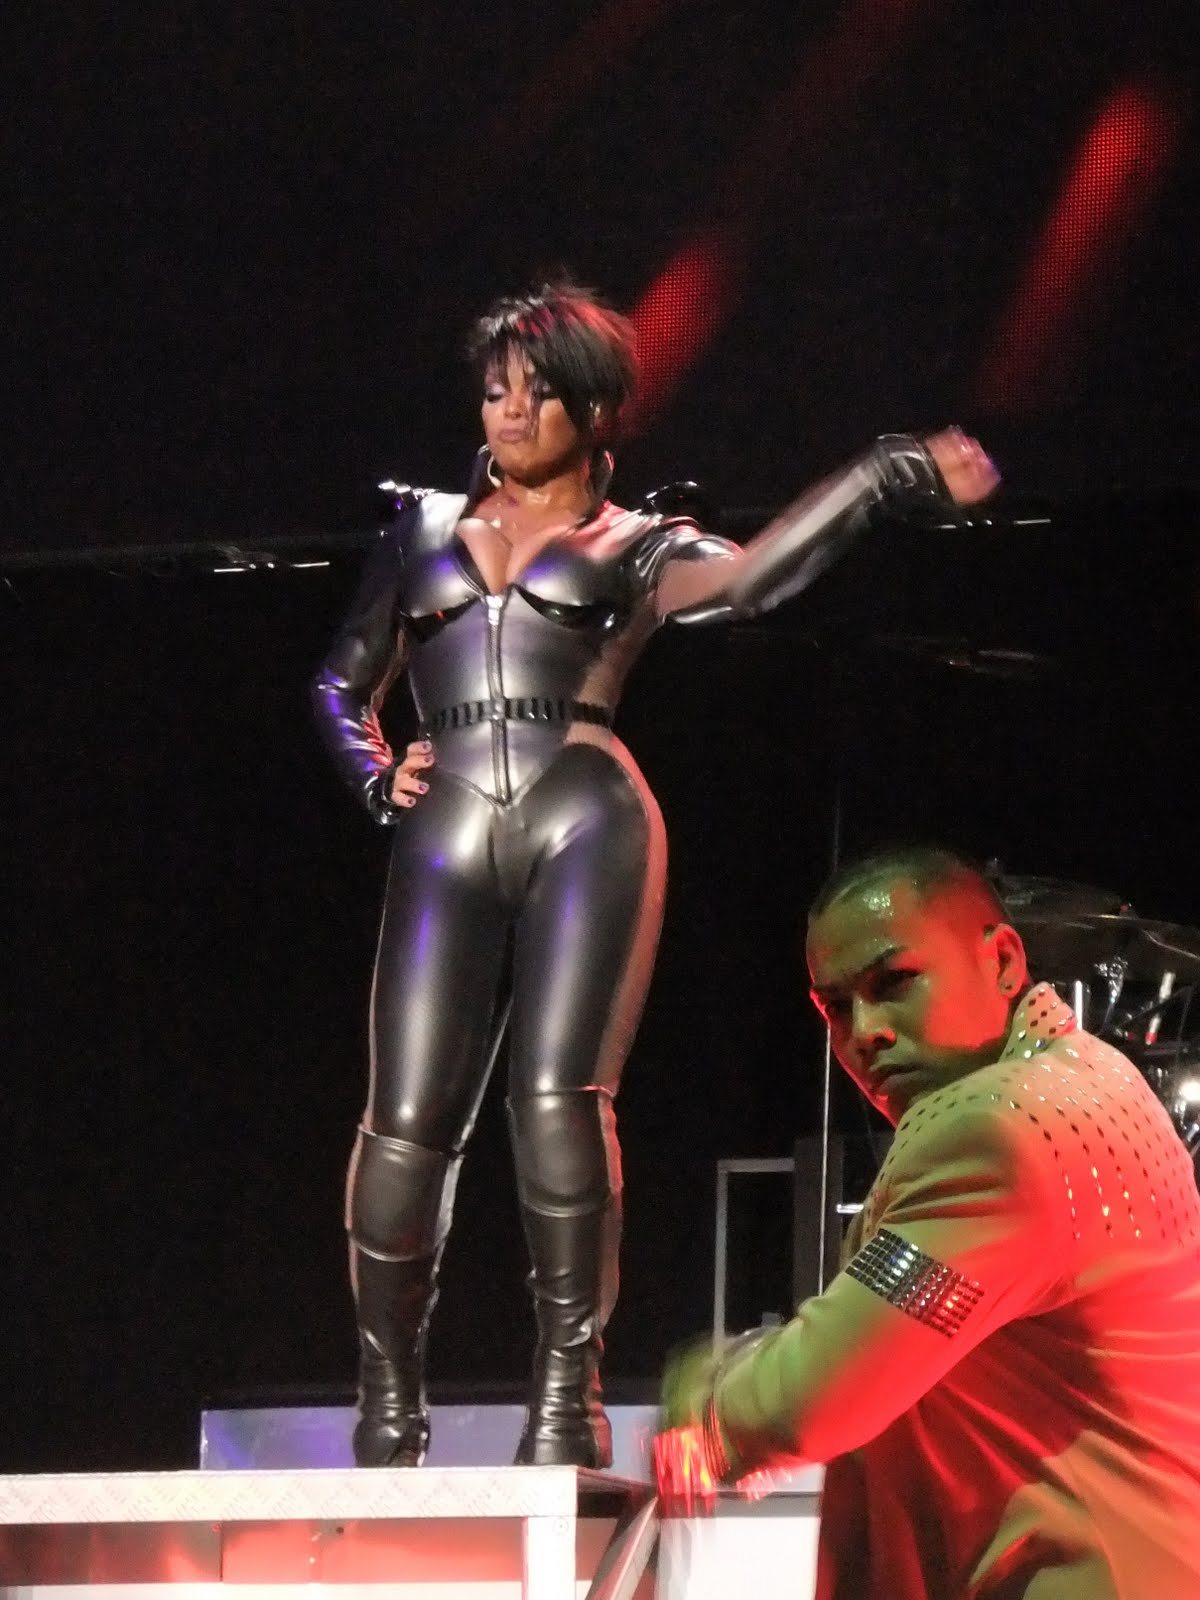 Janet jackson s ass — photo 7